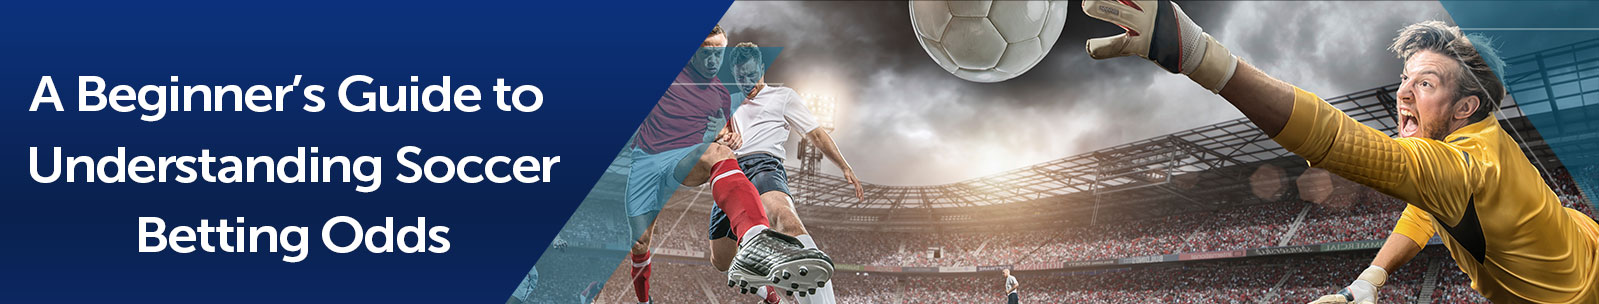 Soccer betting odds south africa solo sports betting tips